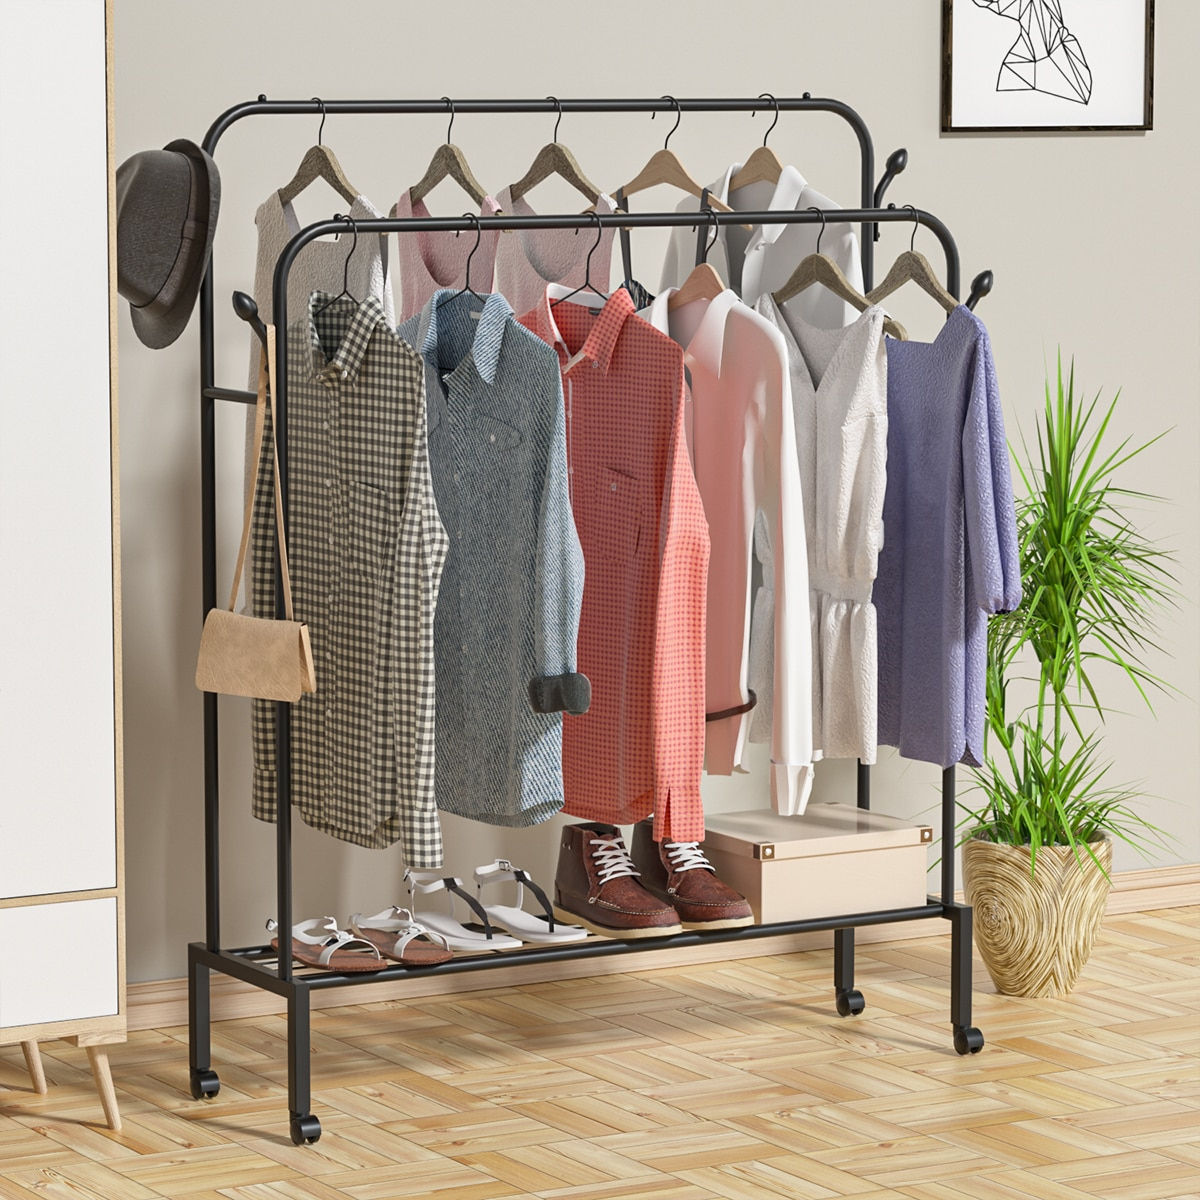 Floor Drying Rack Double Rod Mobile Clothes Storage Rail Clothes Rack Hanger Reinforced Coat Rack Household Room Stand Shelf